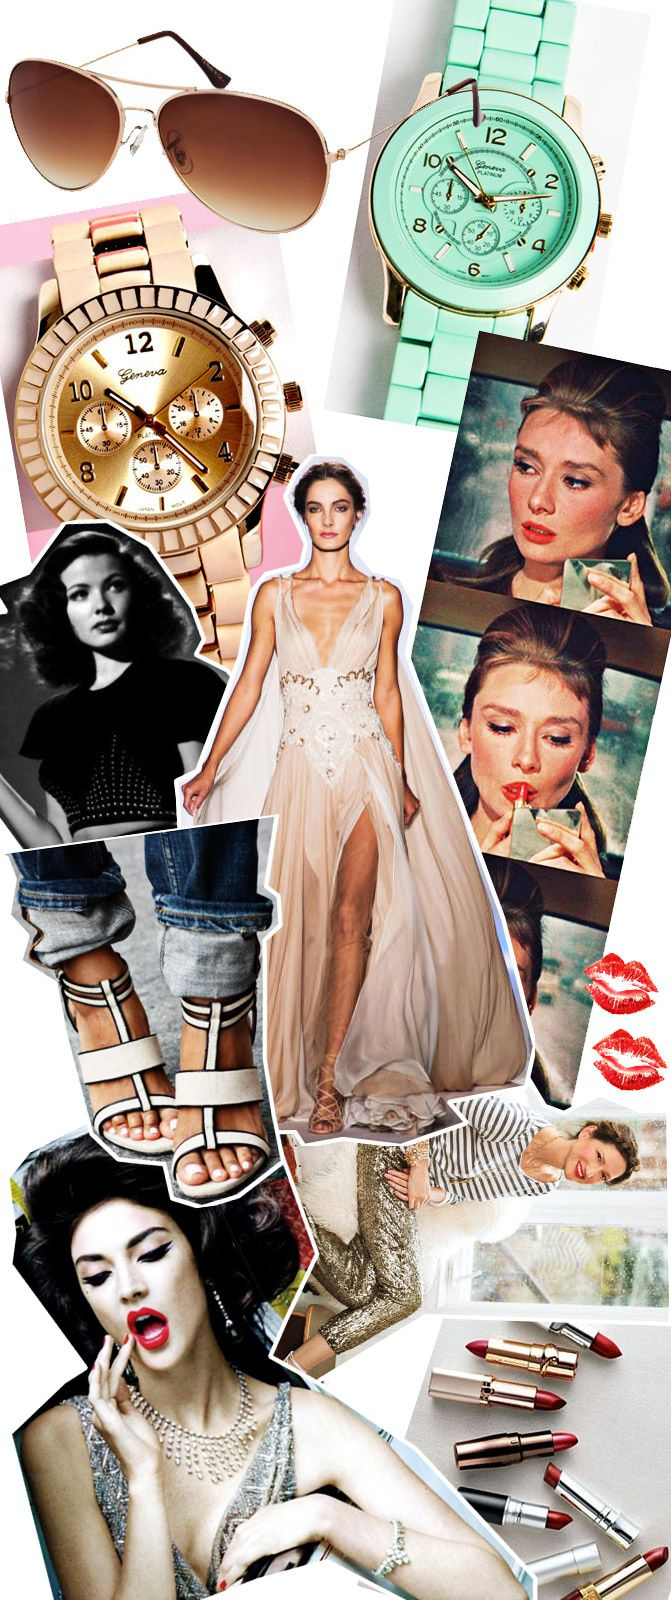 fashion collage, audrey hepburn, red lipstick, style, couture